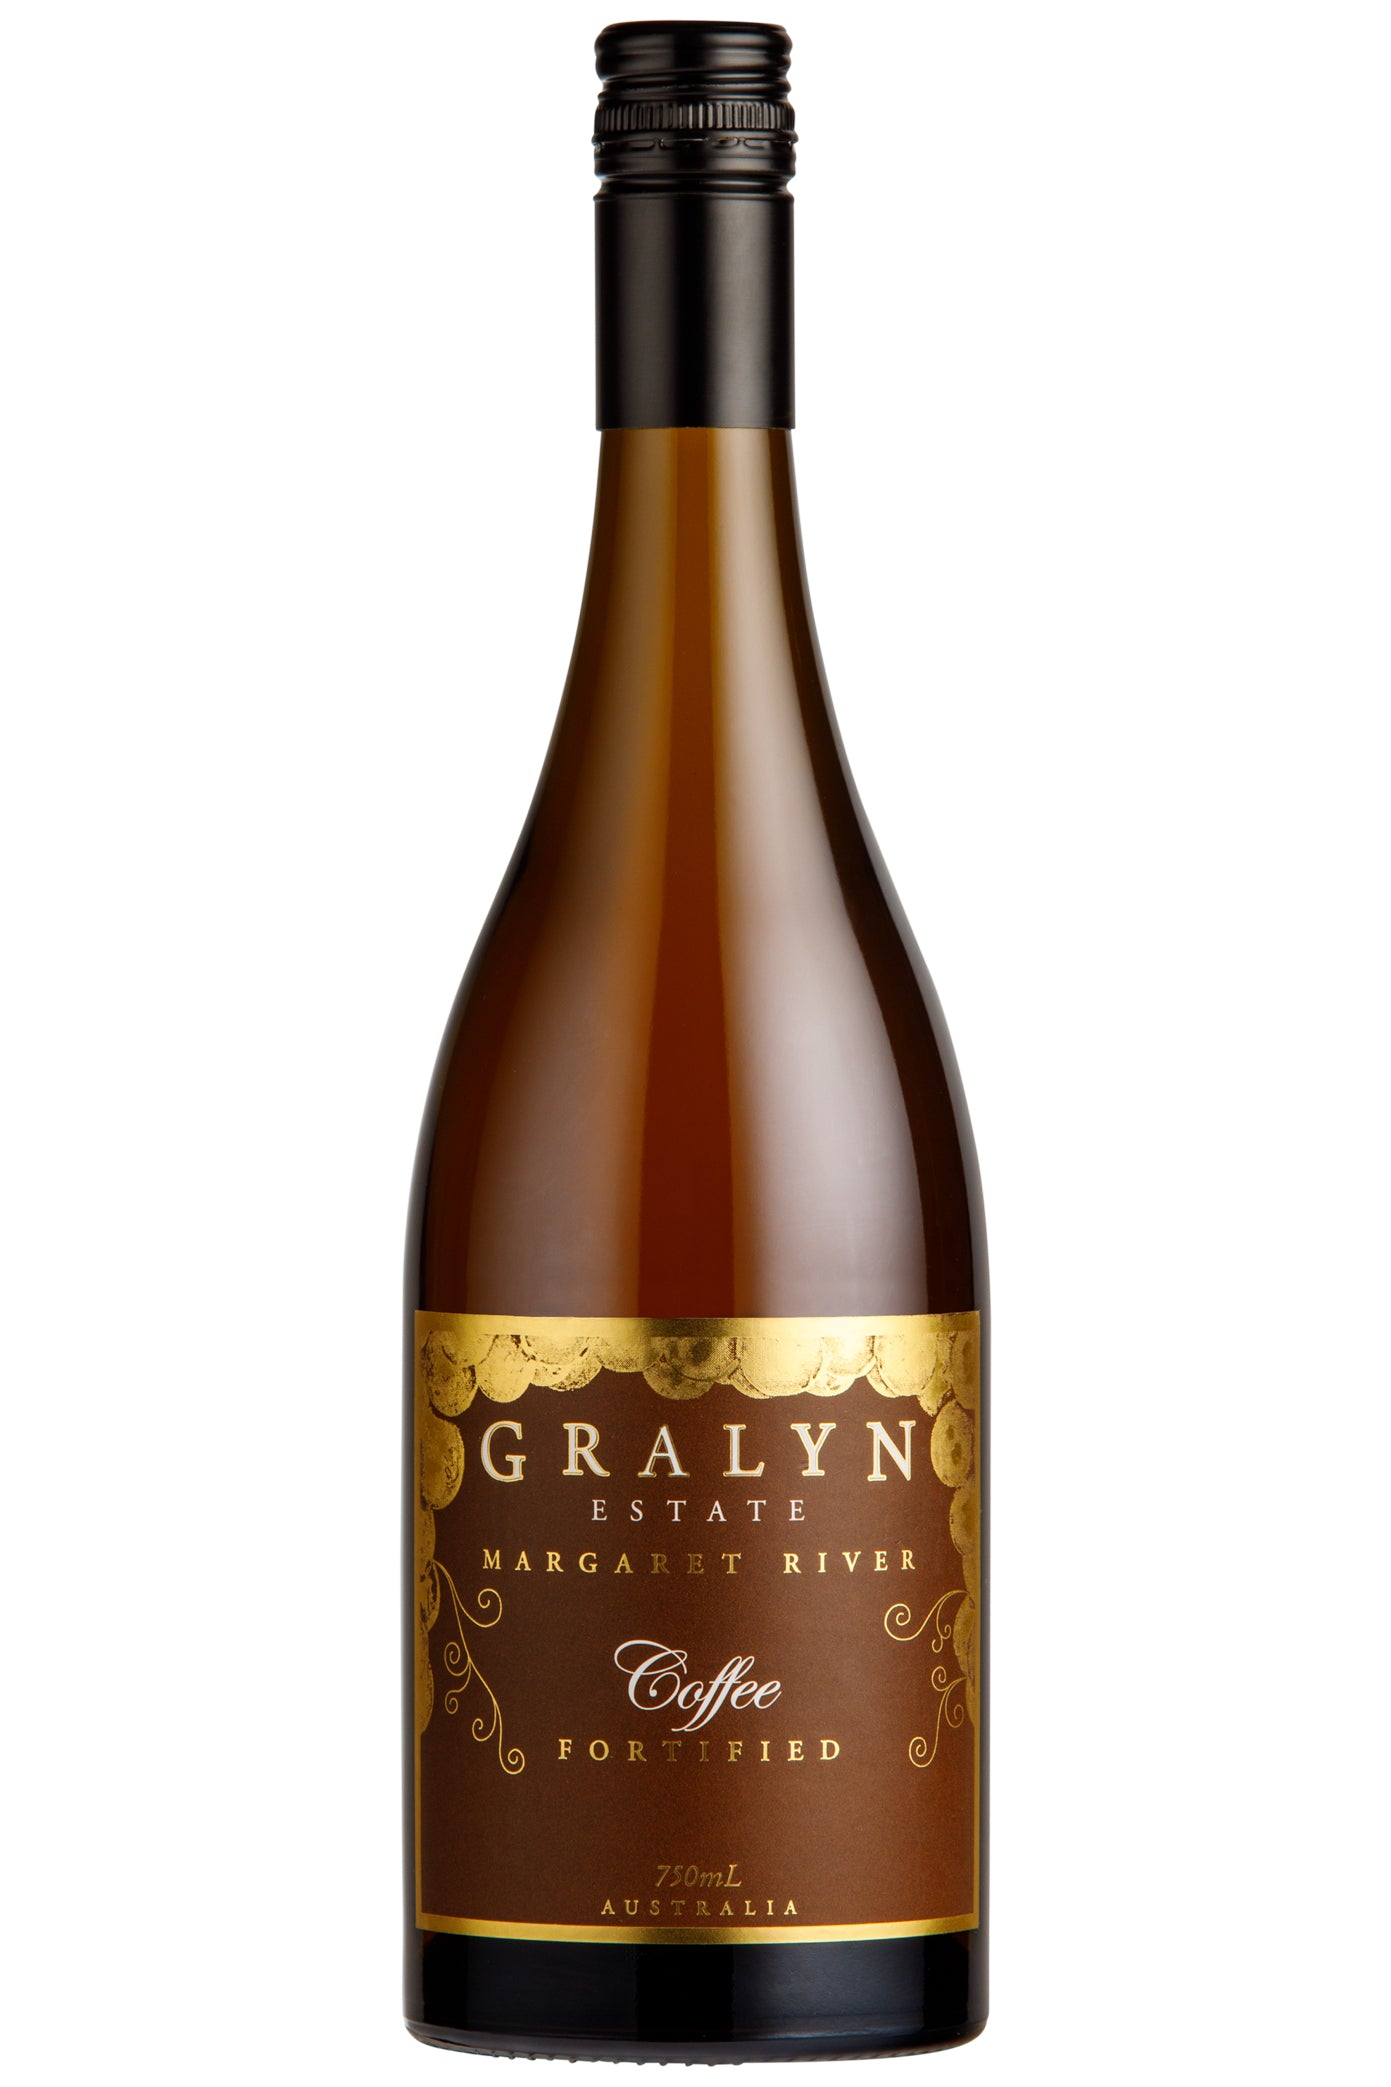 Gralyn Estate Margaret River Coffee Fortified 2020